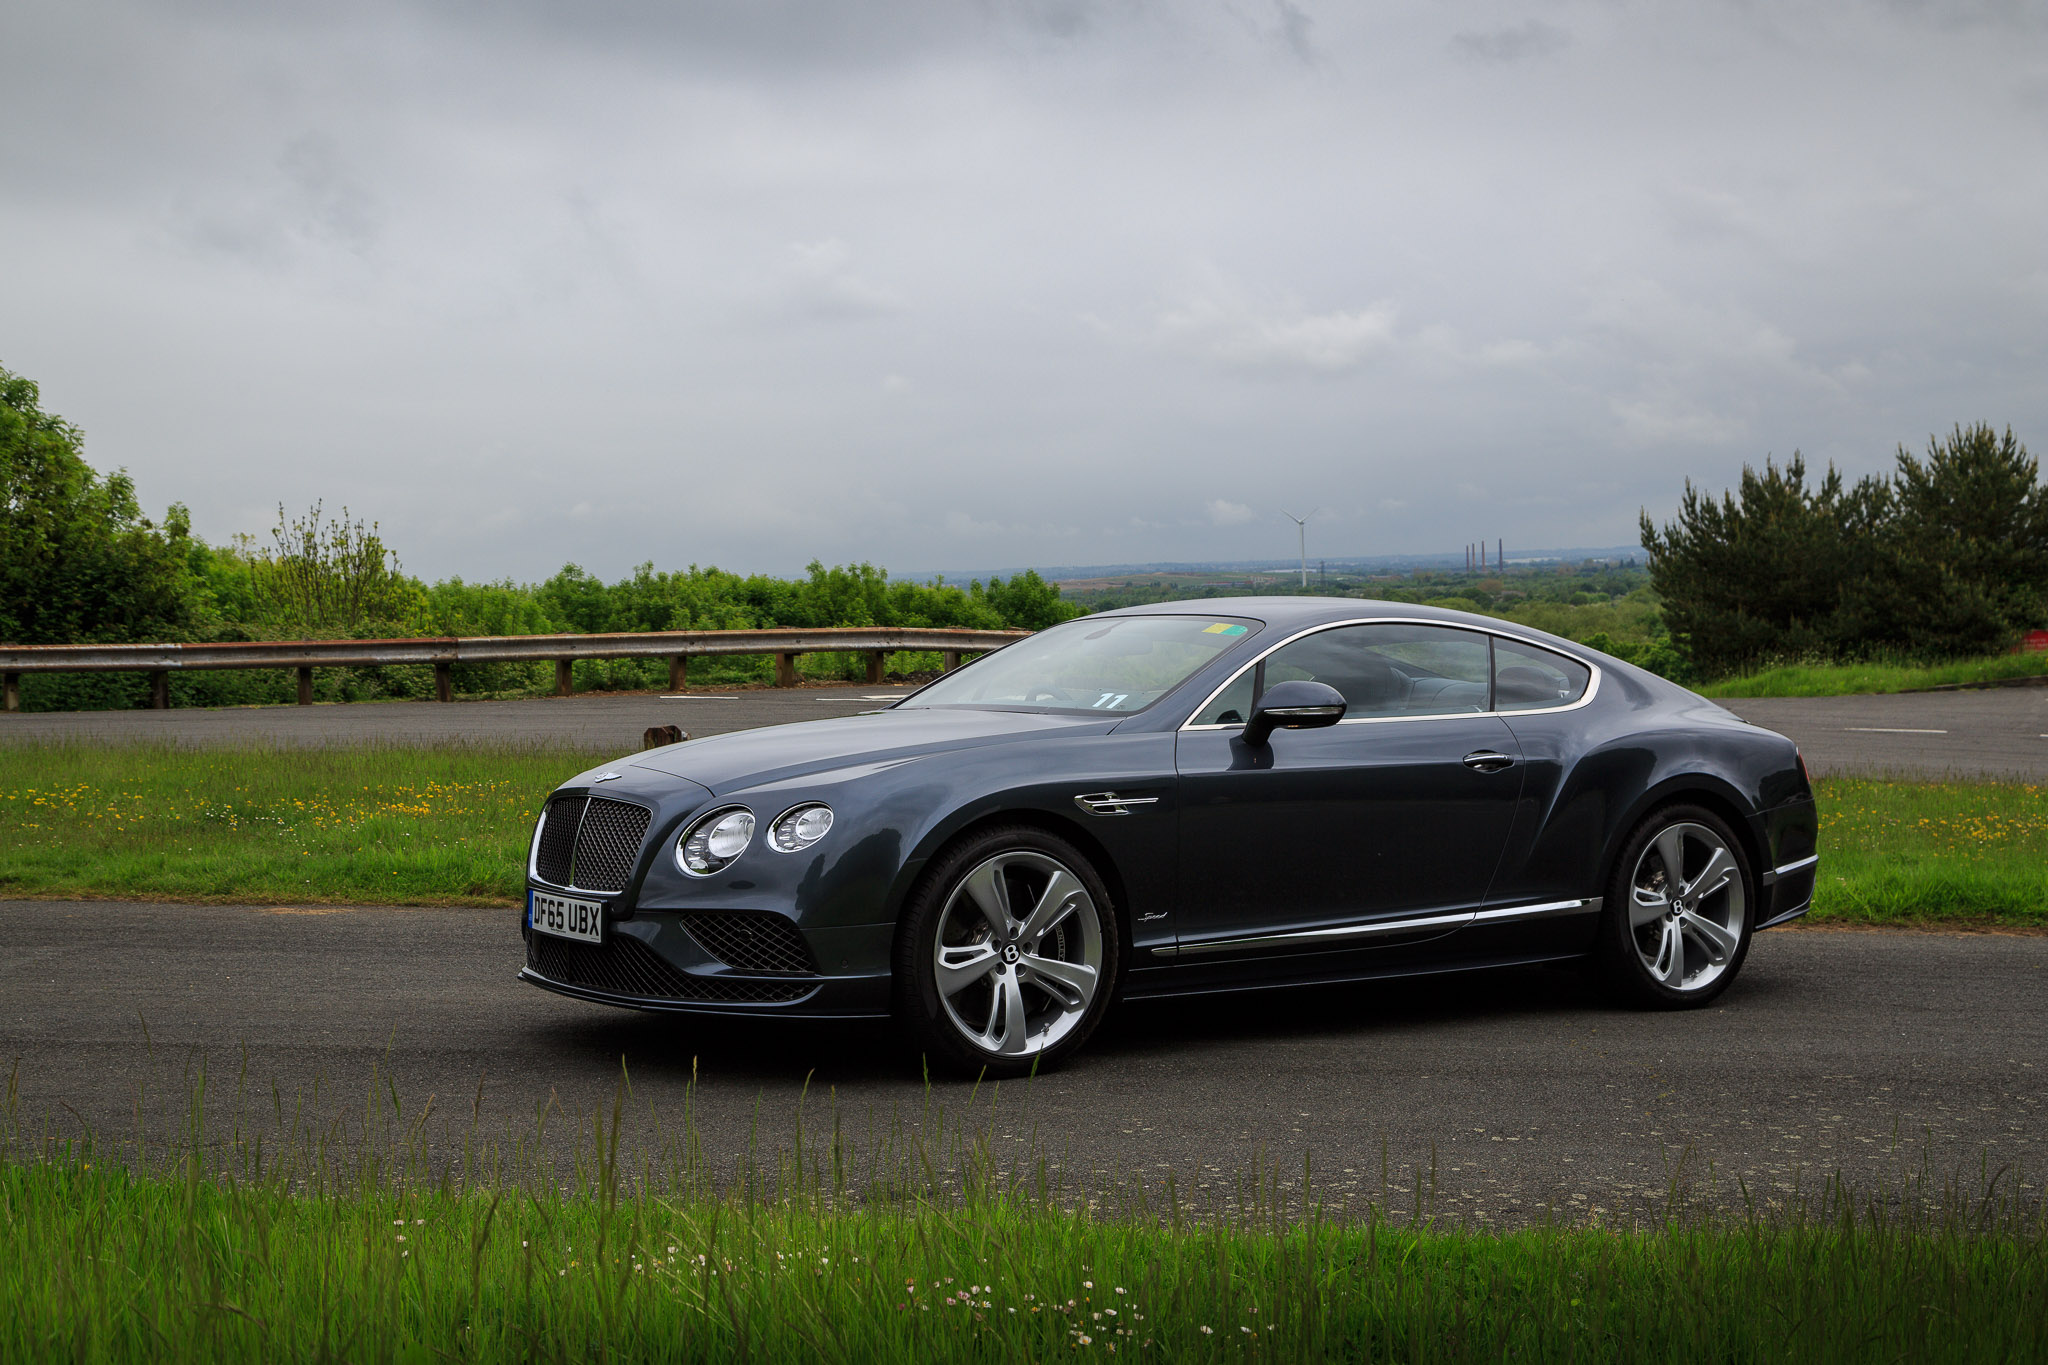 bentley continental gt 2016 review 626 bhp and 820 nm of torque. Black Bedroom Furniture Sets. Home Design Ideas